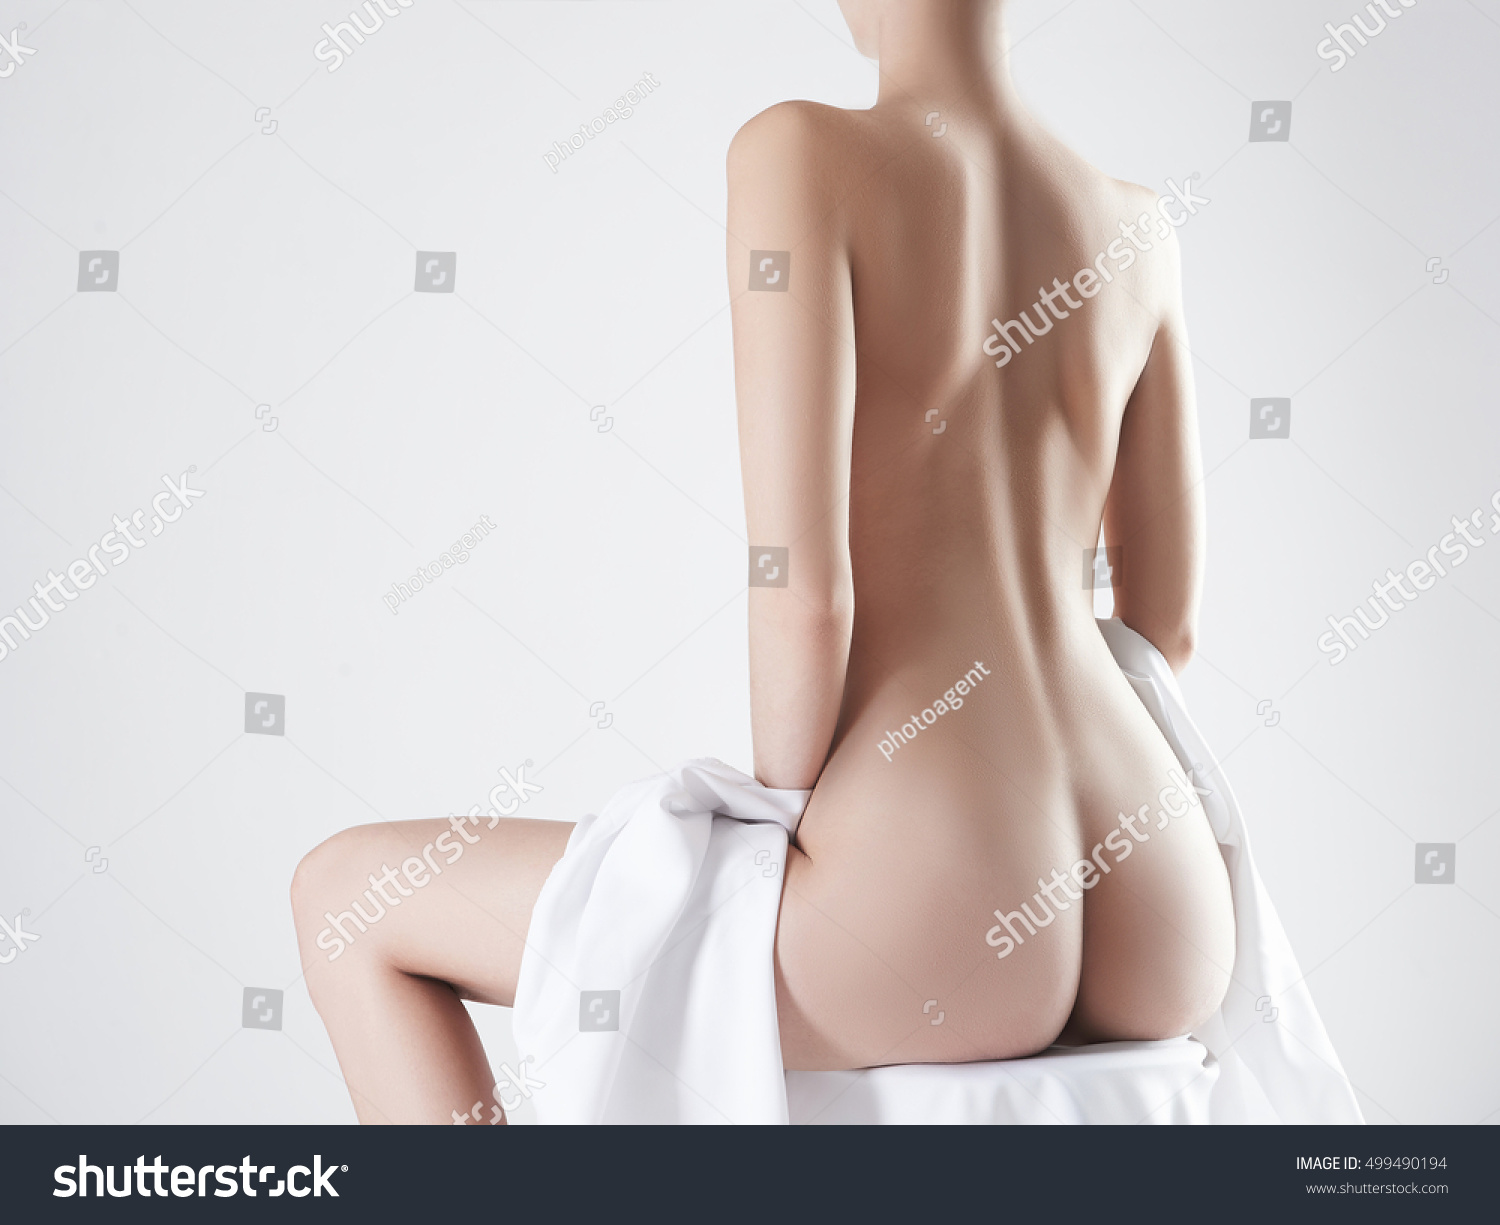 Nude Booty nude beauty young woman naked sexy stock photo (edit now